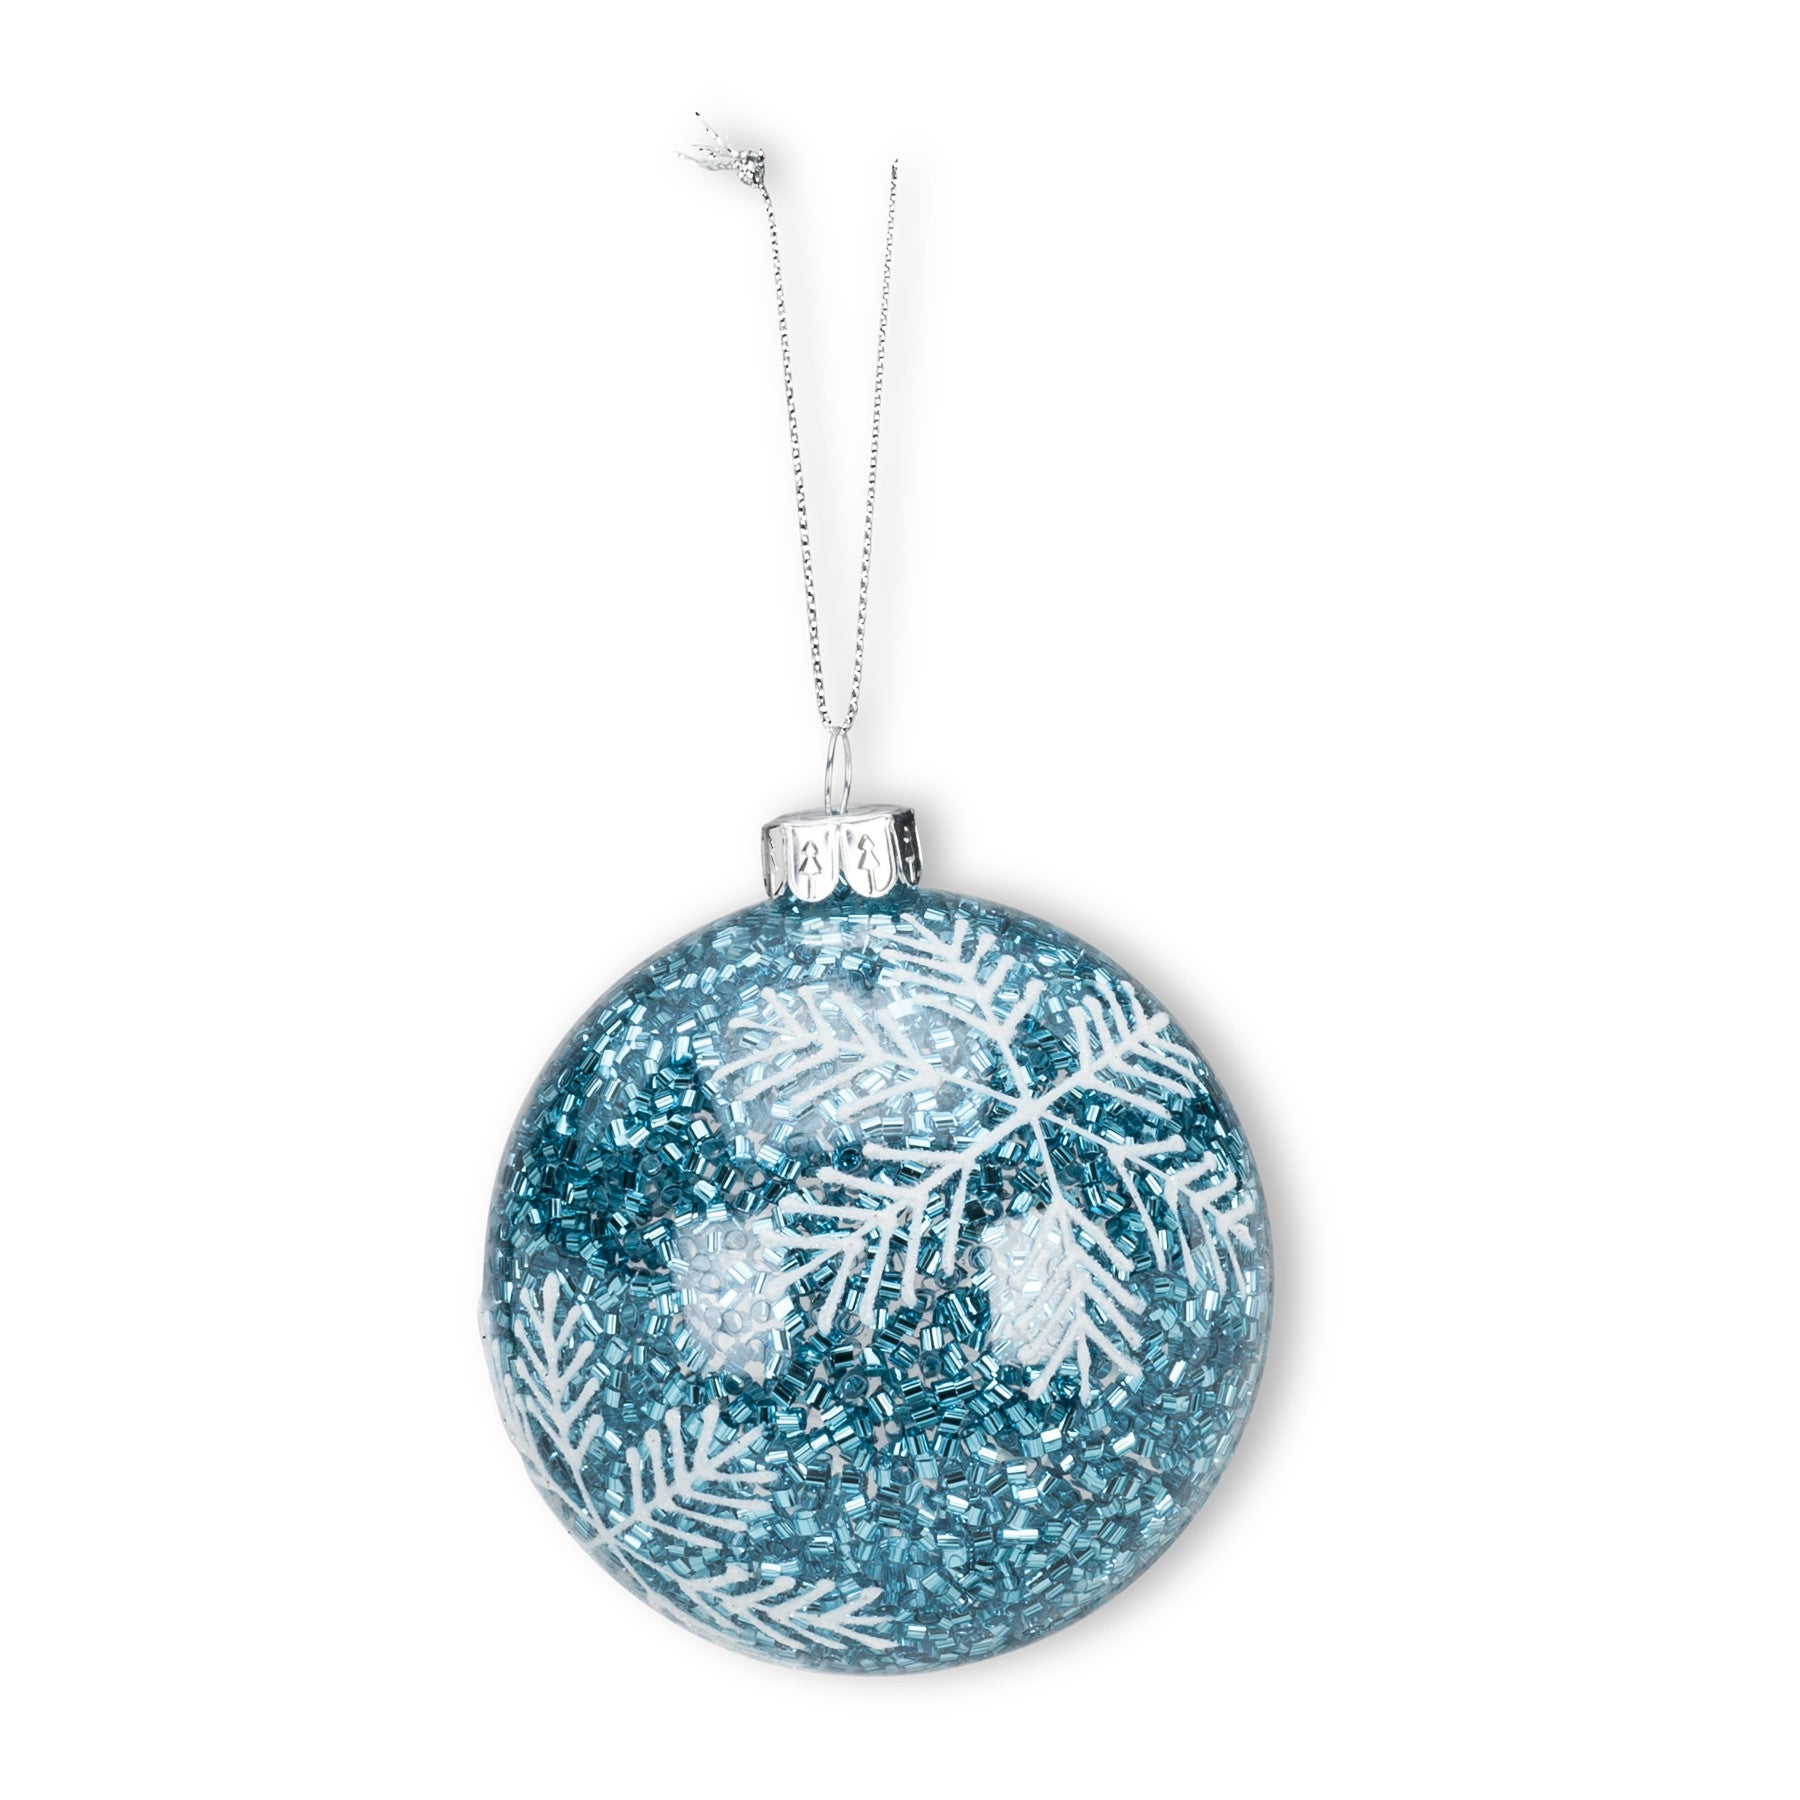 Turquoise Glitter Snowflake Ornament, AC-Abbott Collection, Putti Fine Furnishings